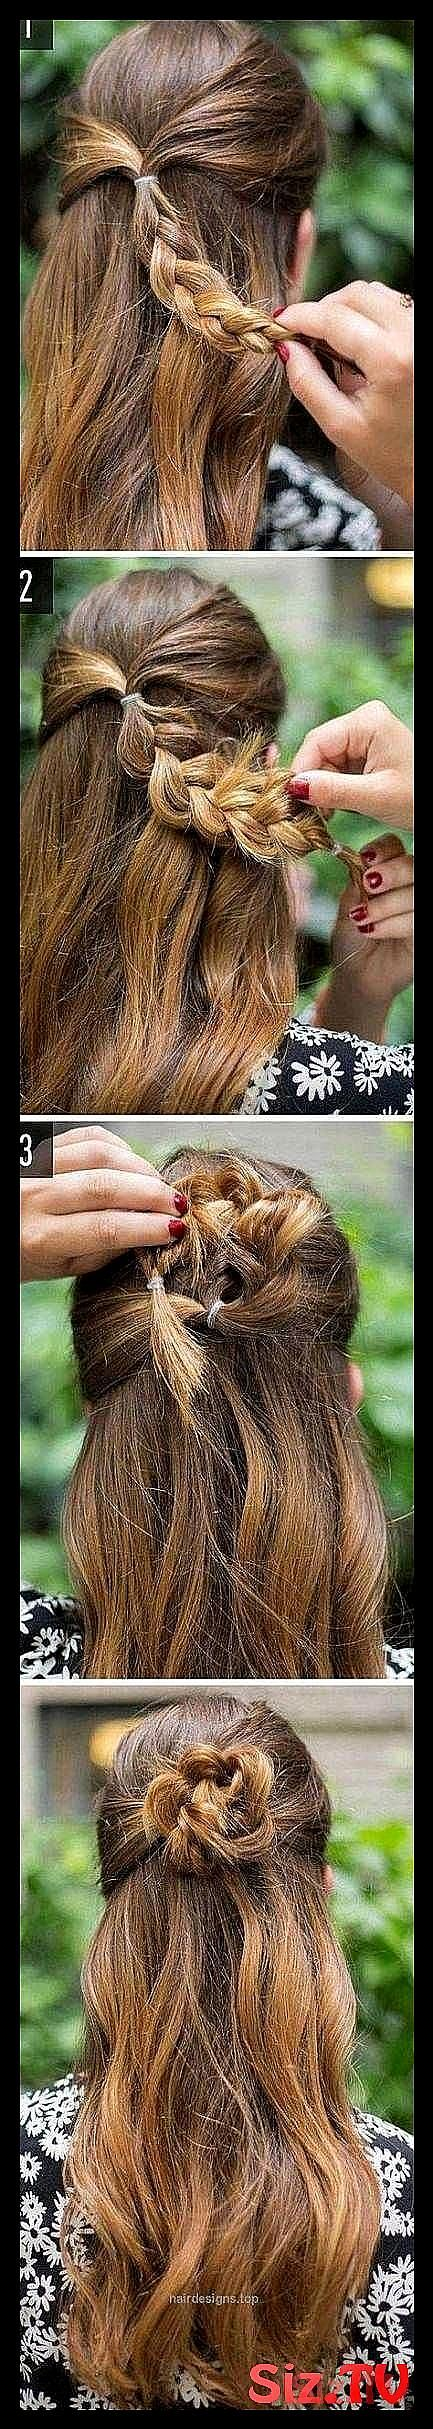 Hair Styles Quick Easy Top Knot 59 Ideas Easy Hair Ideas Knot Quick Styles Top Hair Styles Quick Easy Top Knot 59 Ideas Easy Hair Ideas Knot Quick StyHair Styles Quick Easy Top Knot 59 Ideas Easy Hair Ideas Knot Quick Styles Top Hair Styles Quick Easy Top Knot 59 Ideas Easy Hair Ideas Knot Quick StyMessy Bun Save Images Messy Bun Hair Styles Quick Easy Top Knot 59 Ideas Easy Hair Ideas Knot Quick Styles Top Hair Styles Quick Easy Top  #ideas #messybuntopknot #quick #styles #topknotbunhowto